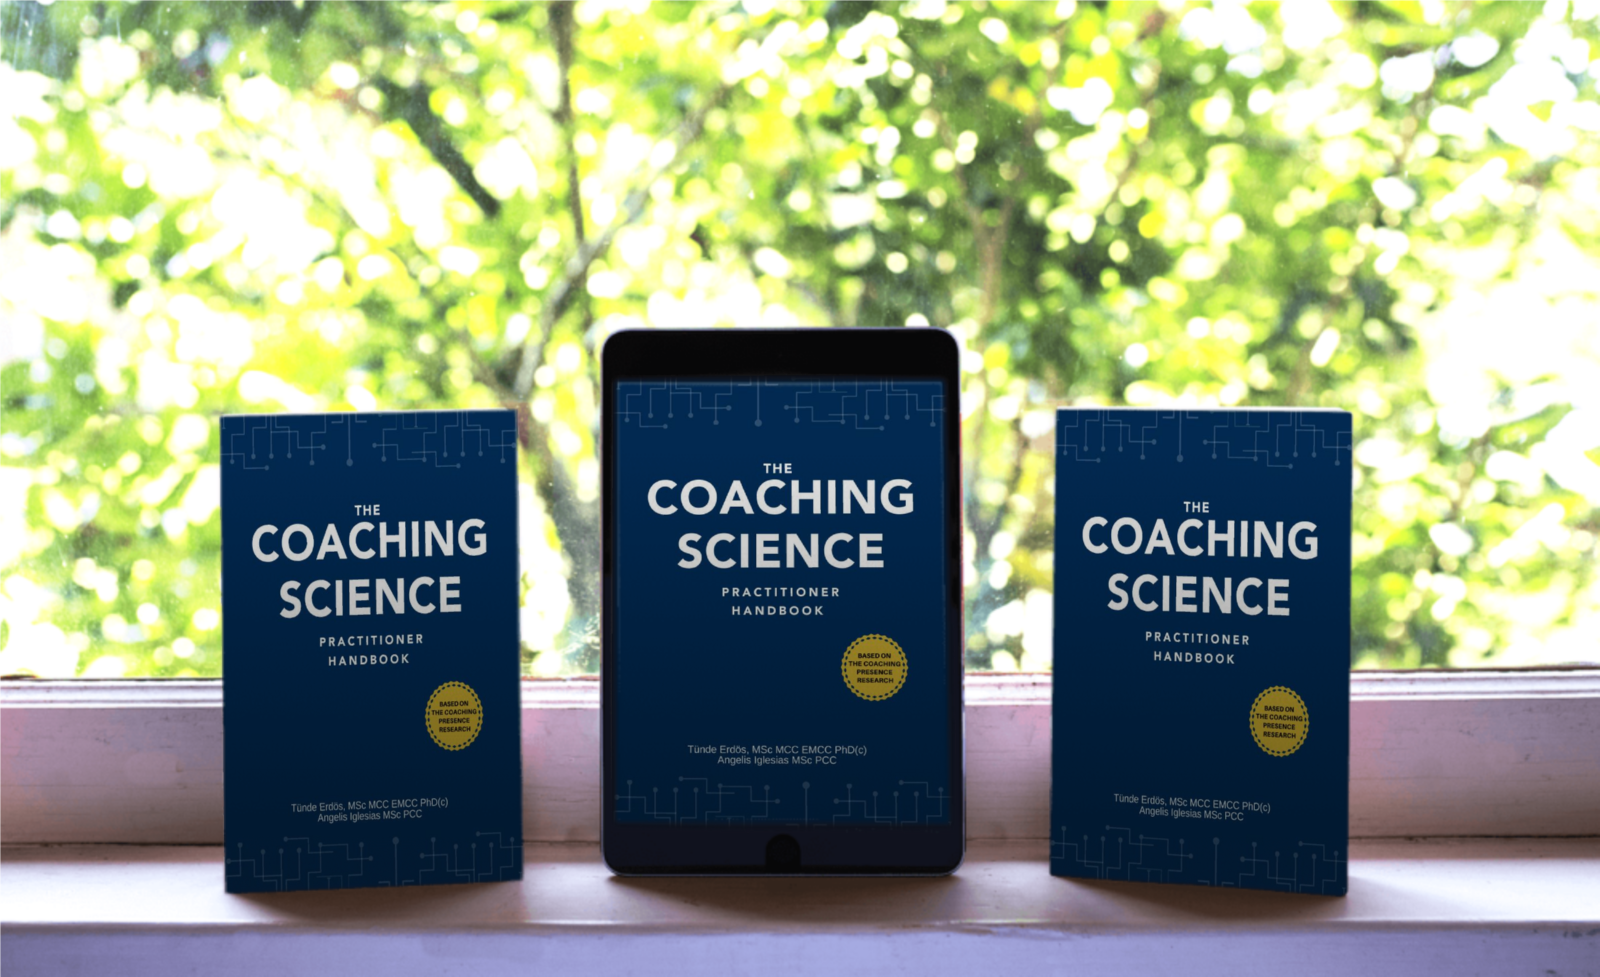 Welcome to a virtual book launch event The Coaching Science Practitioner Handbook  on the 8th of May, 2020